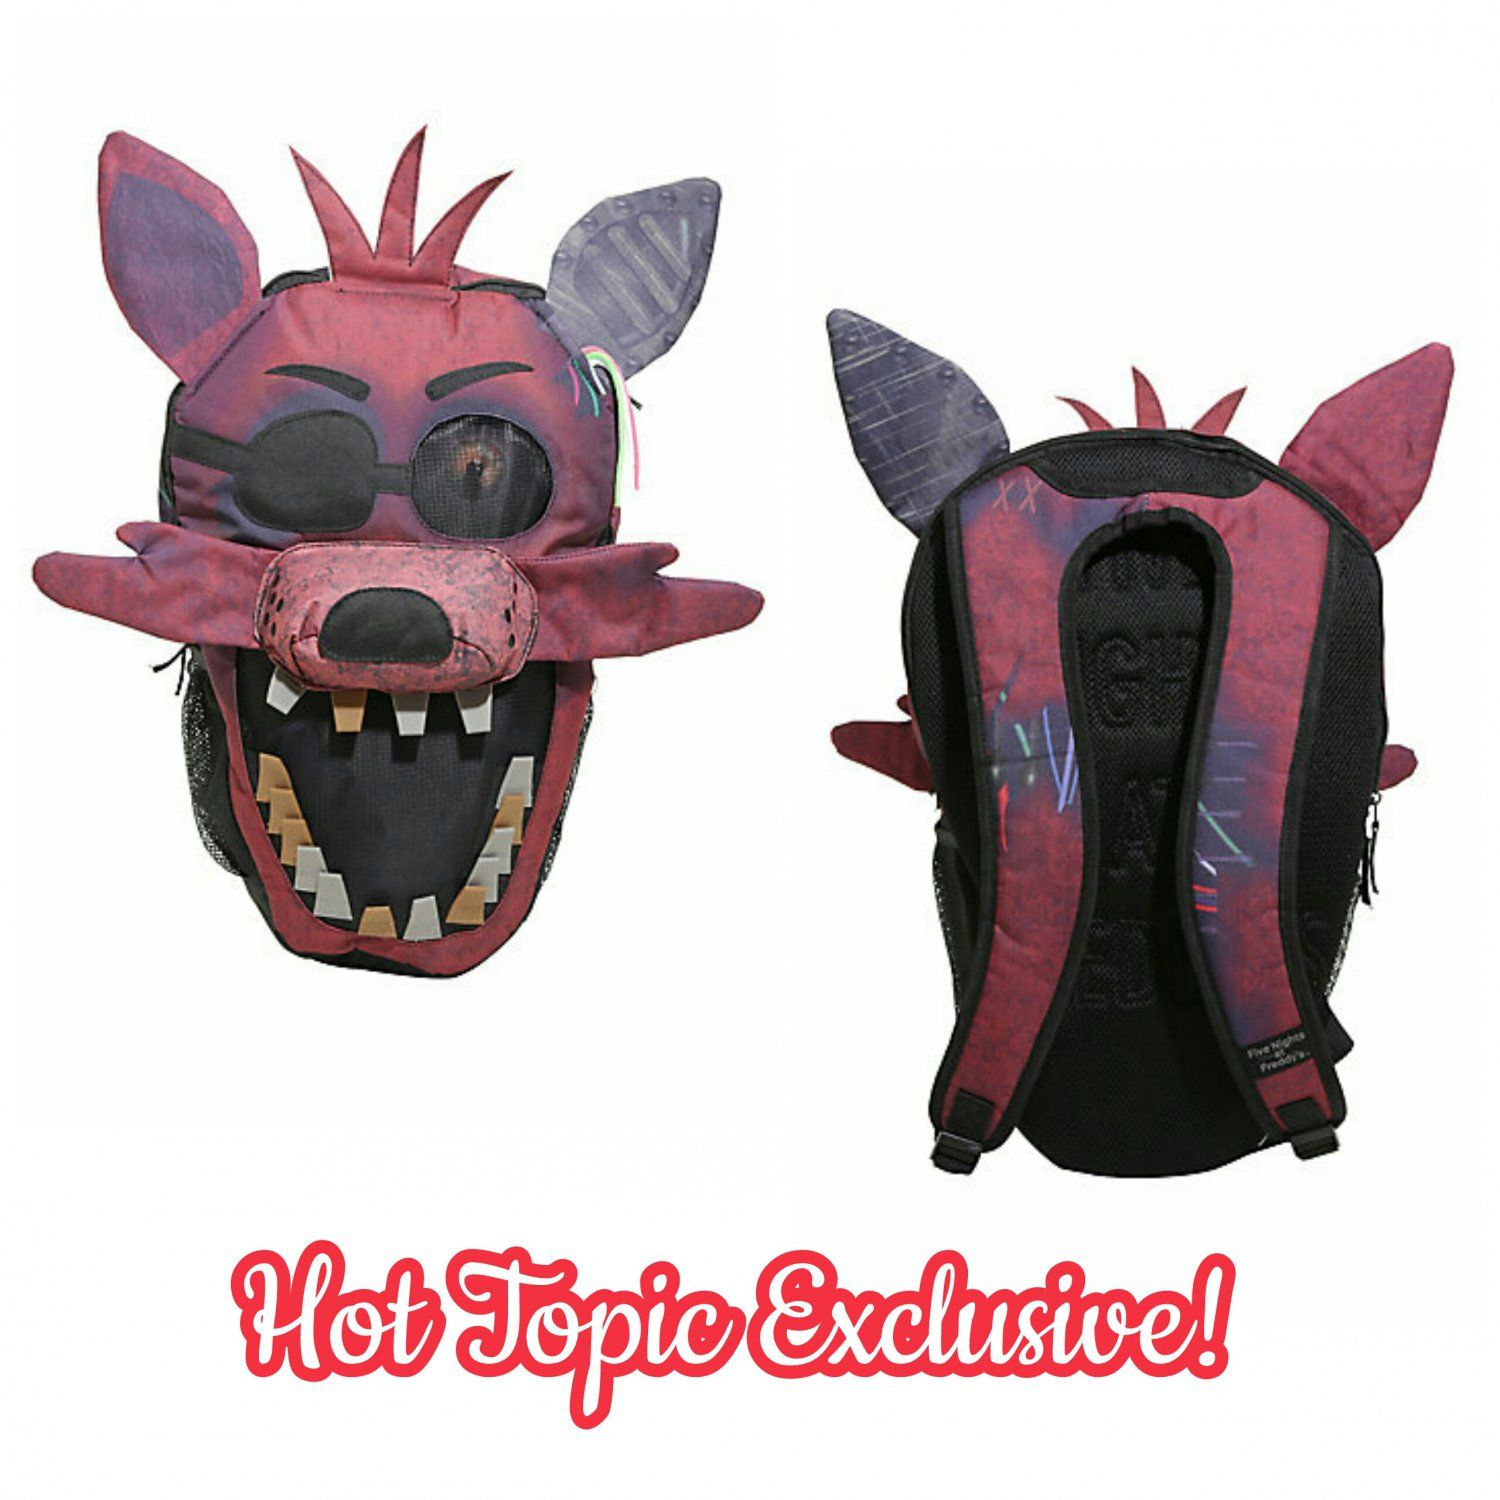 Five Nights At Freddy's Foxy (The Pirate) Face Character Backpack by Bioworld - Hot Topic Exclusive